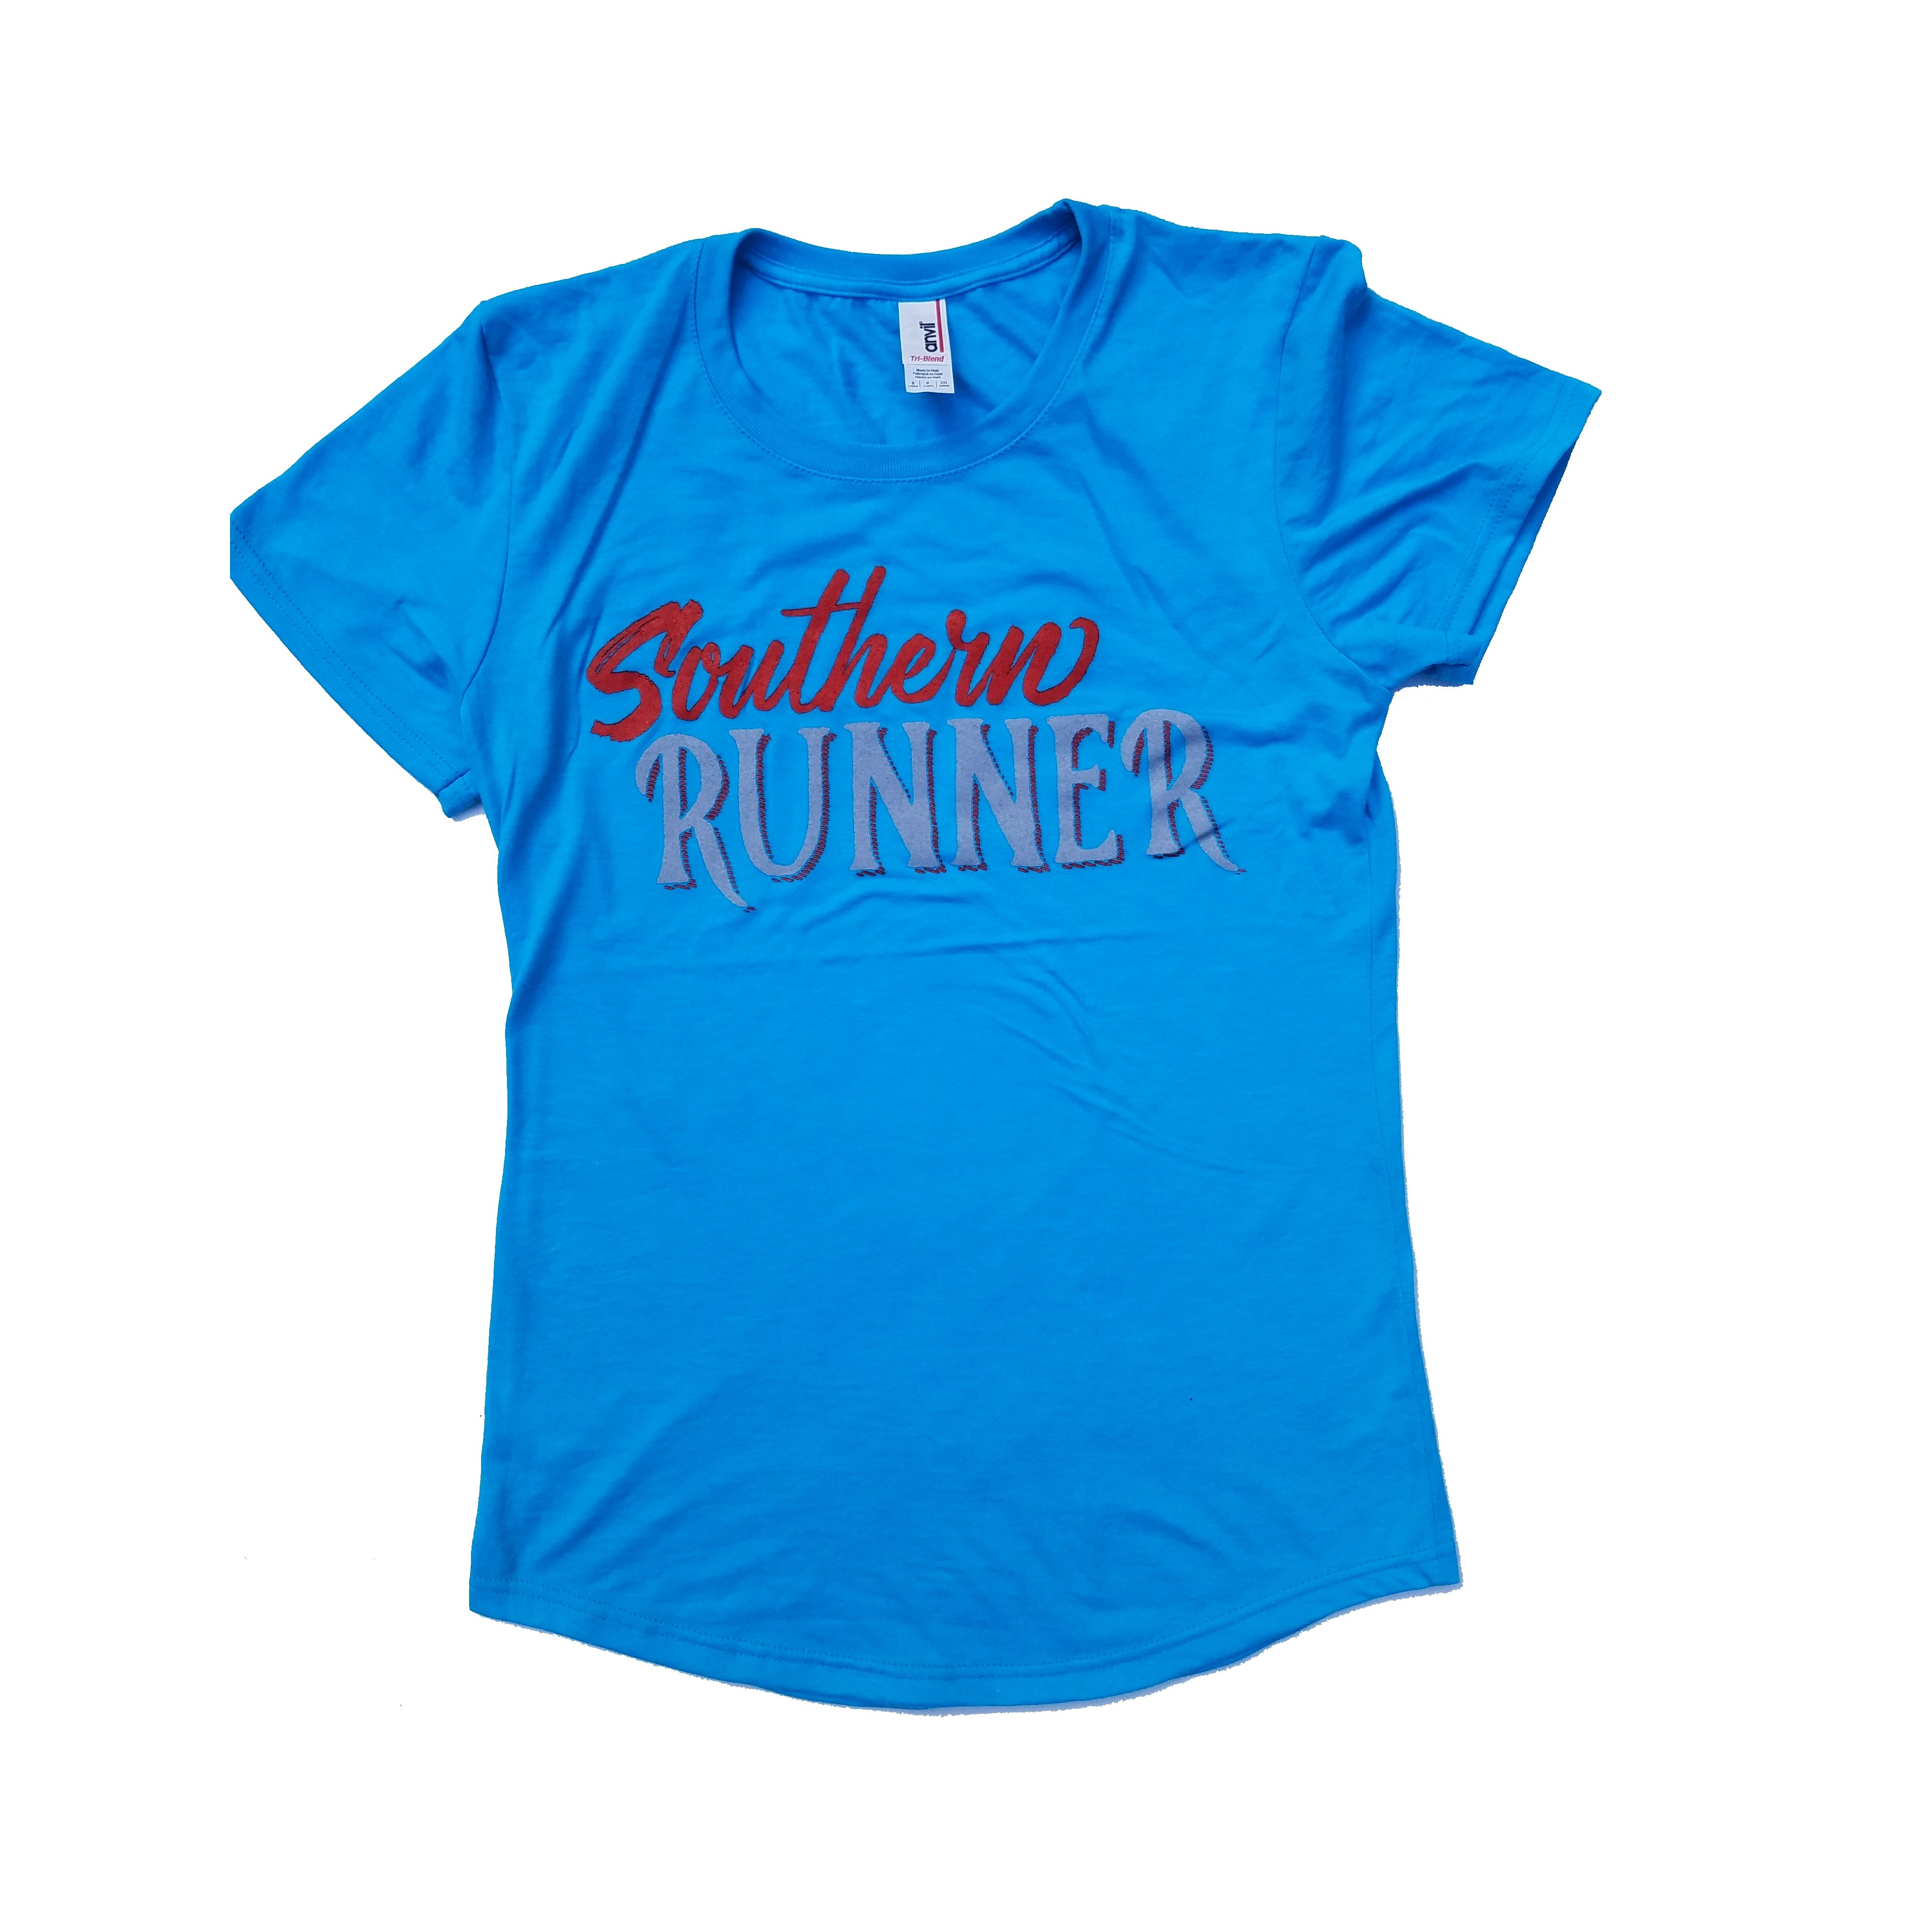 Southern clothing stores